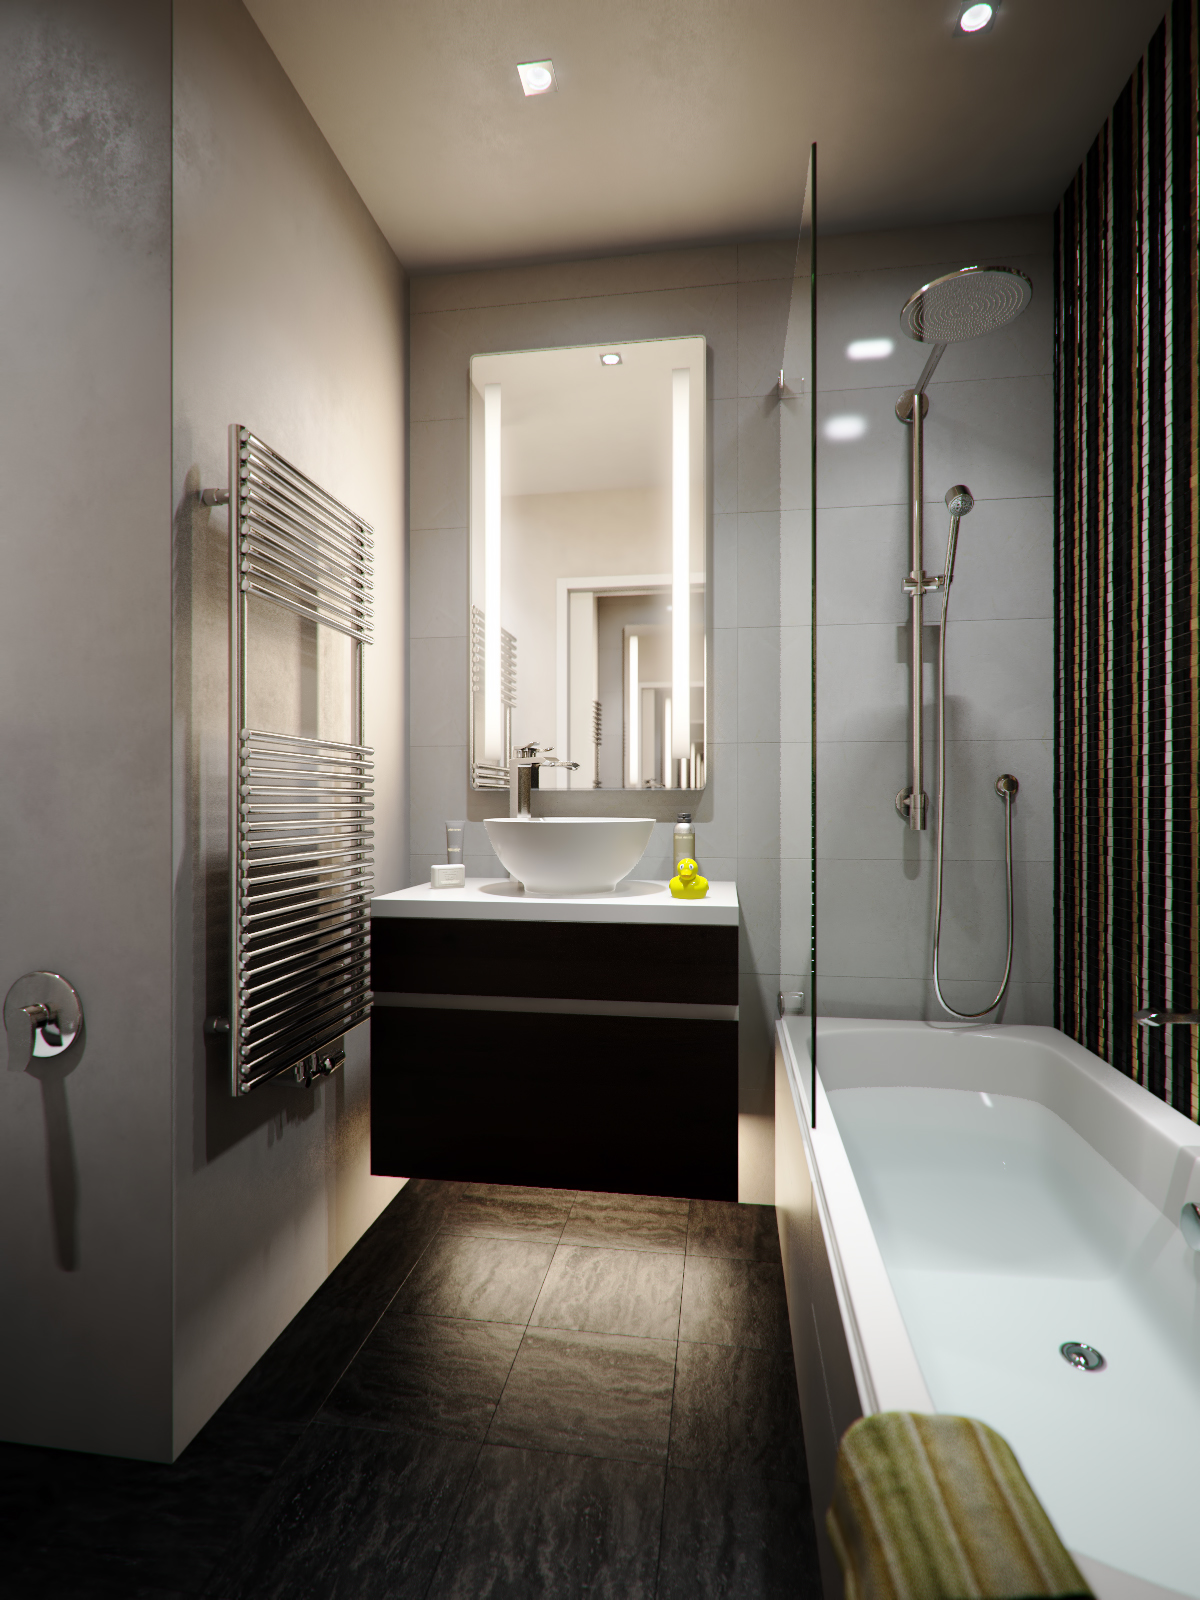 Bathroom designs for apartments - Modern Apartment Bathroom A Small Apartment With Big Dreams